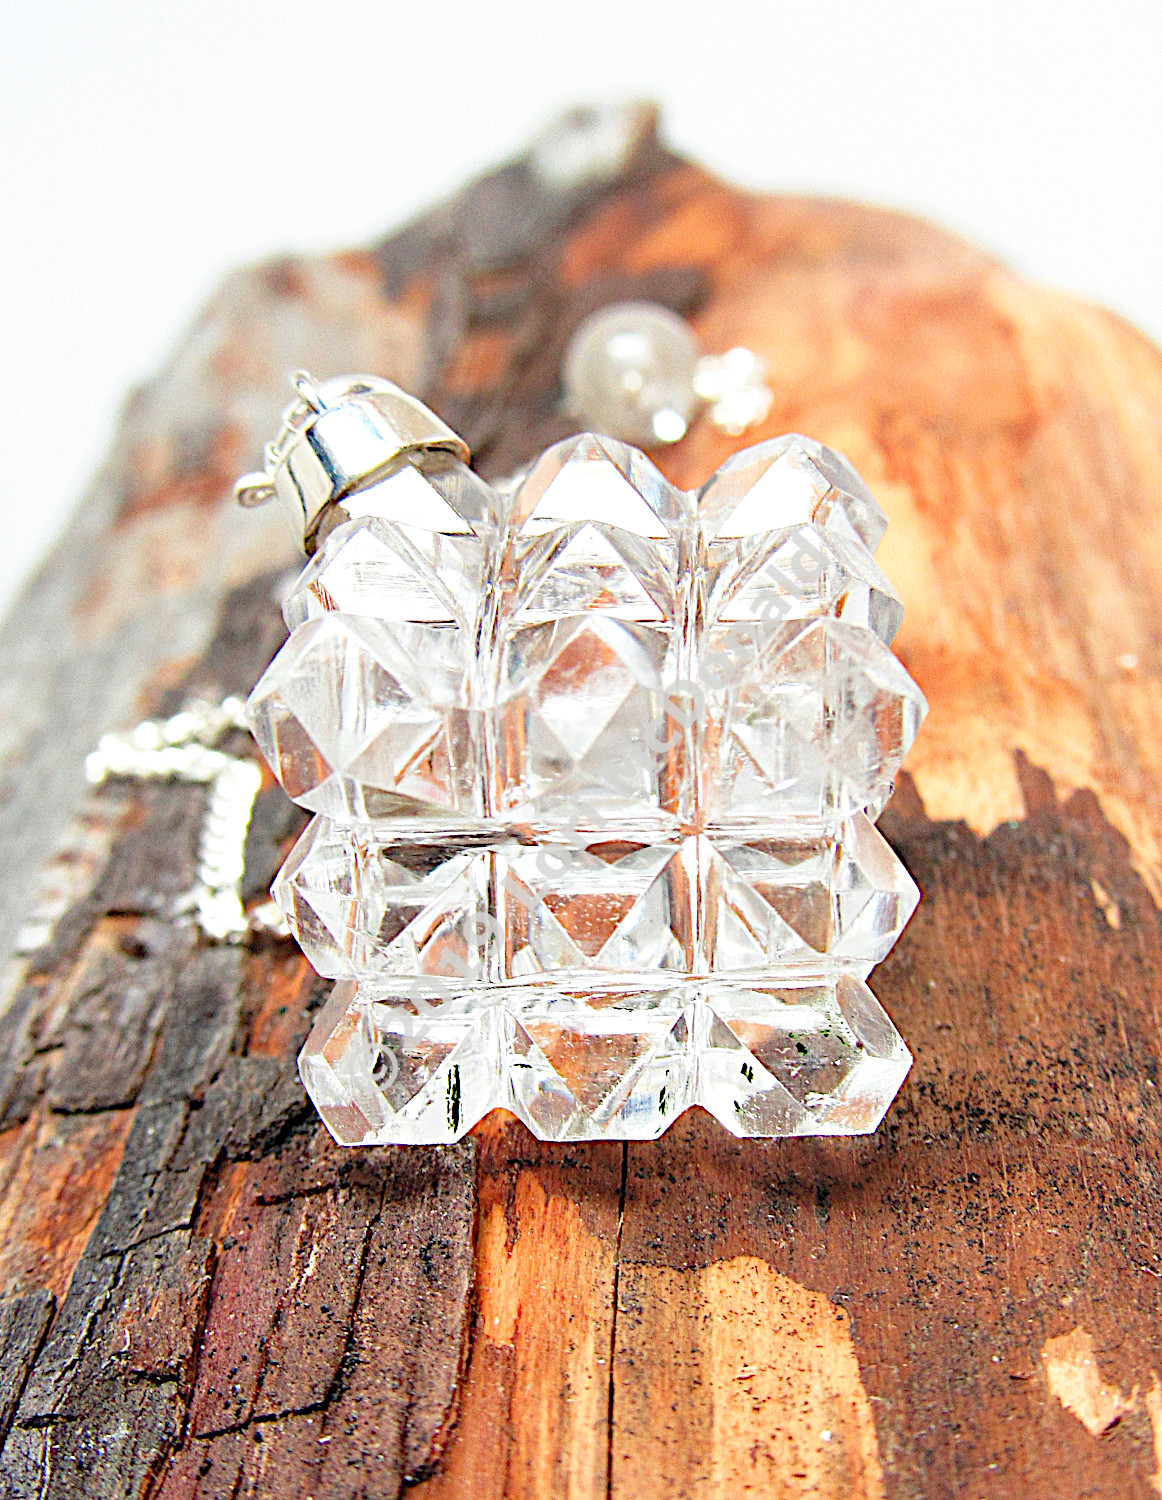 2  Quartz 54 Pyramid Power Cube Crystal Pendulum Reiki Sacred Geometry